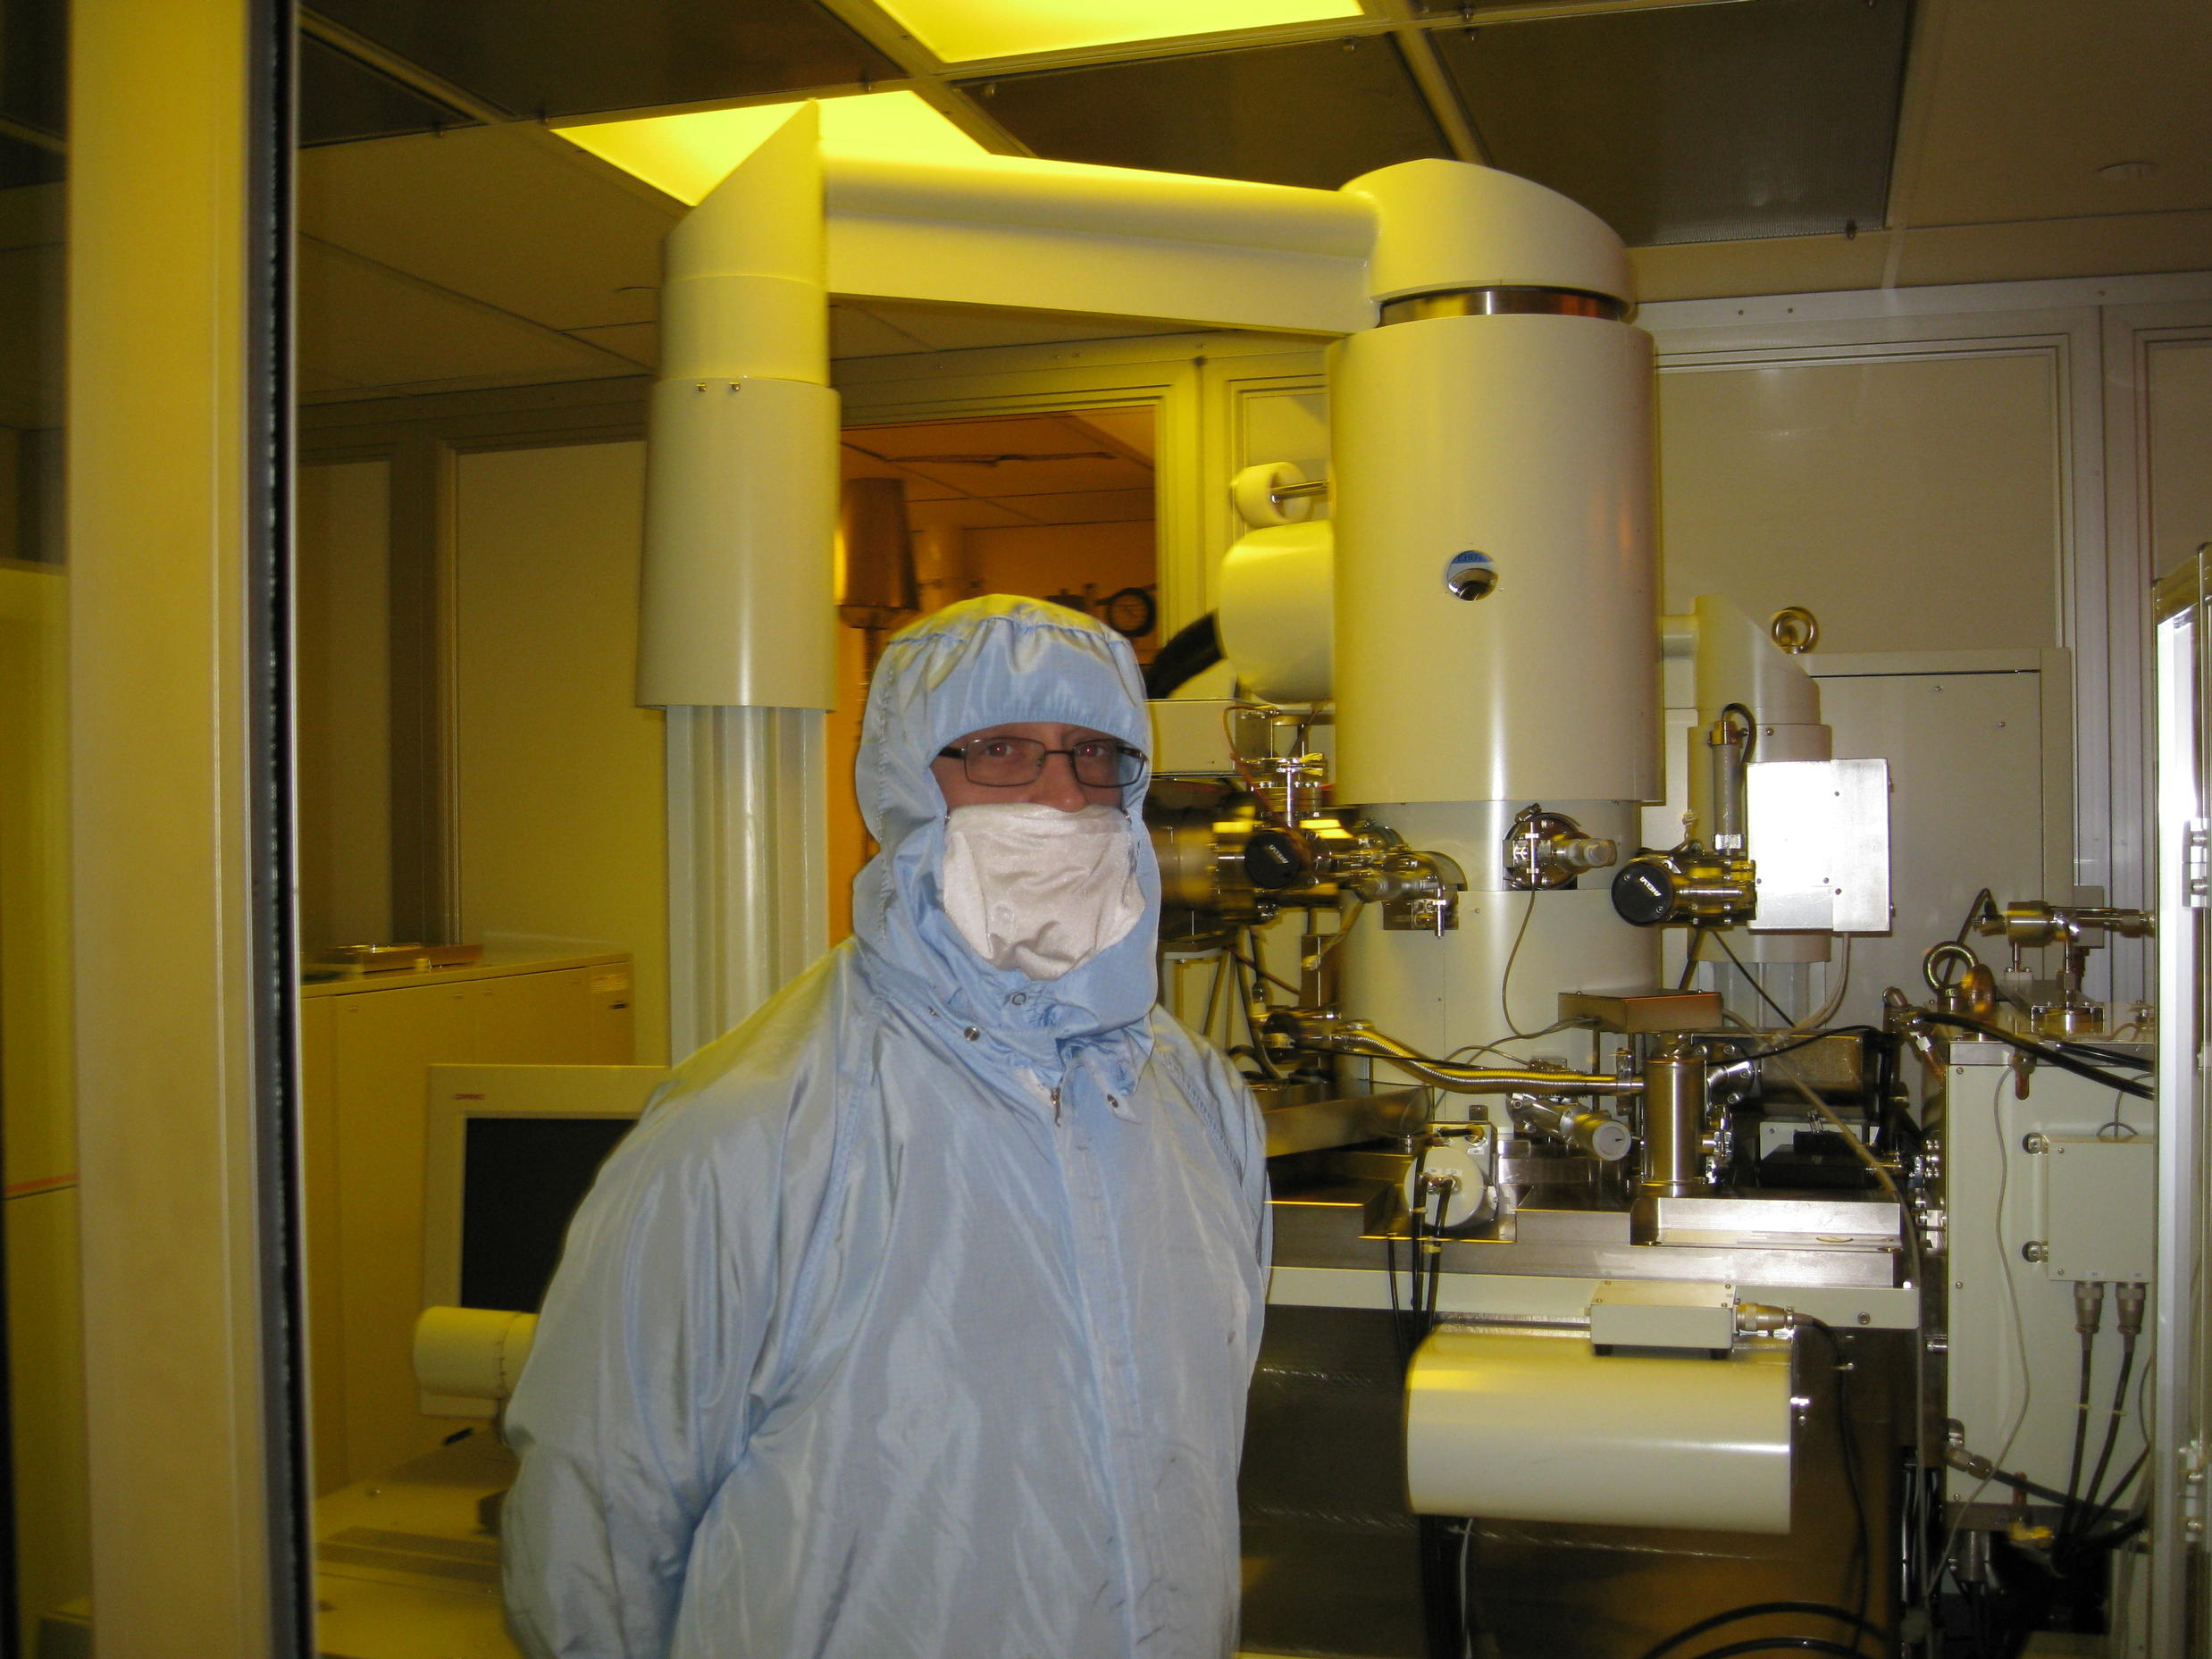 Richard Muller in front of the e-beam lithography tool that wrote over 1.3 million names on the microchip that will fly on Orion.